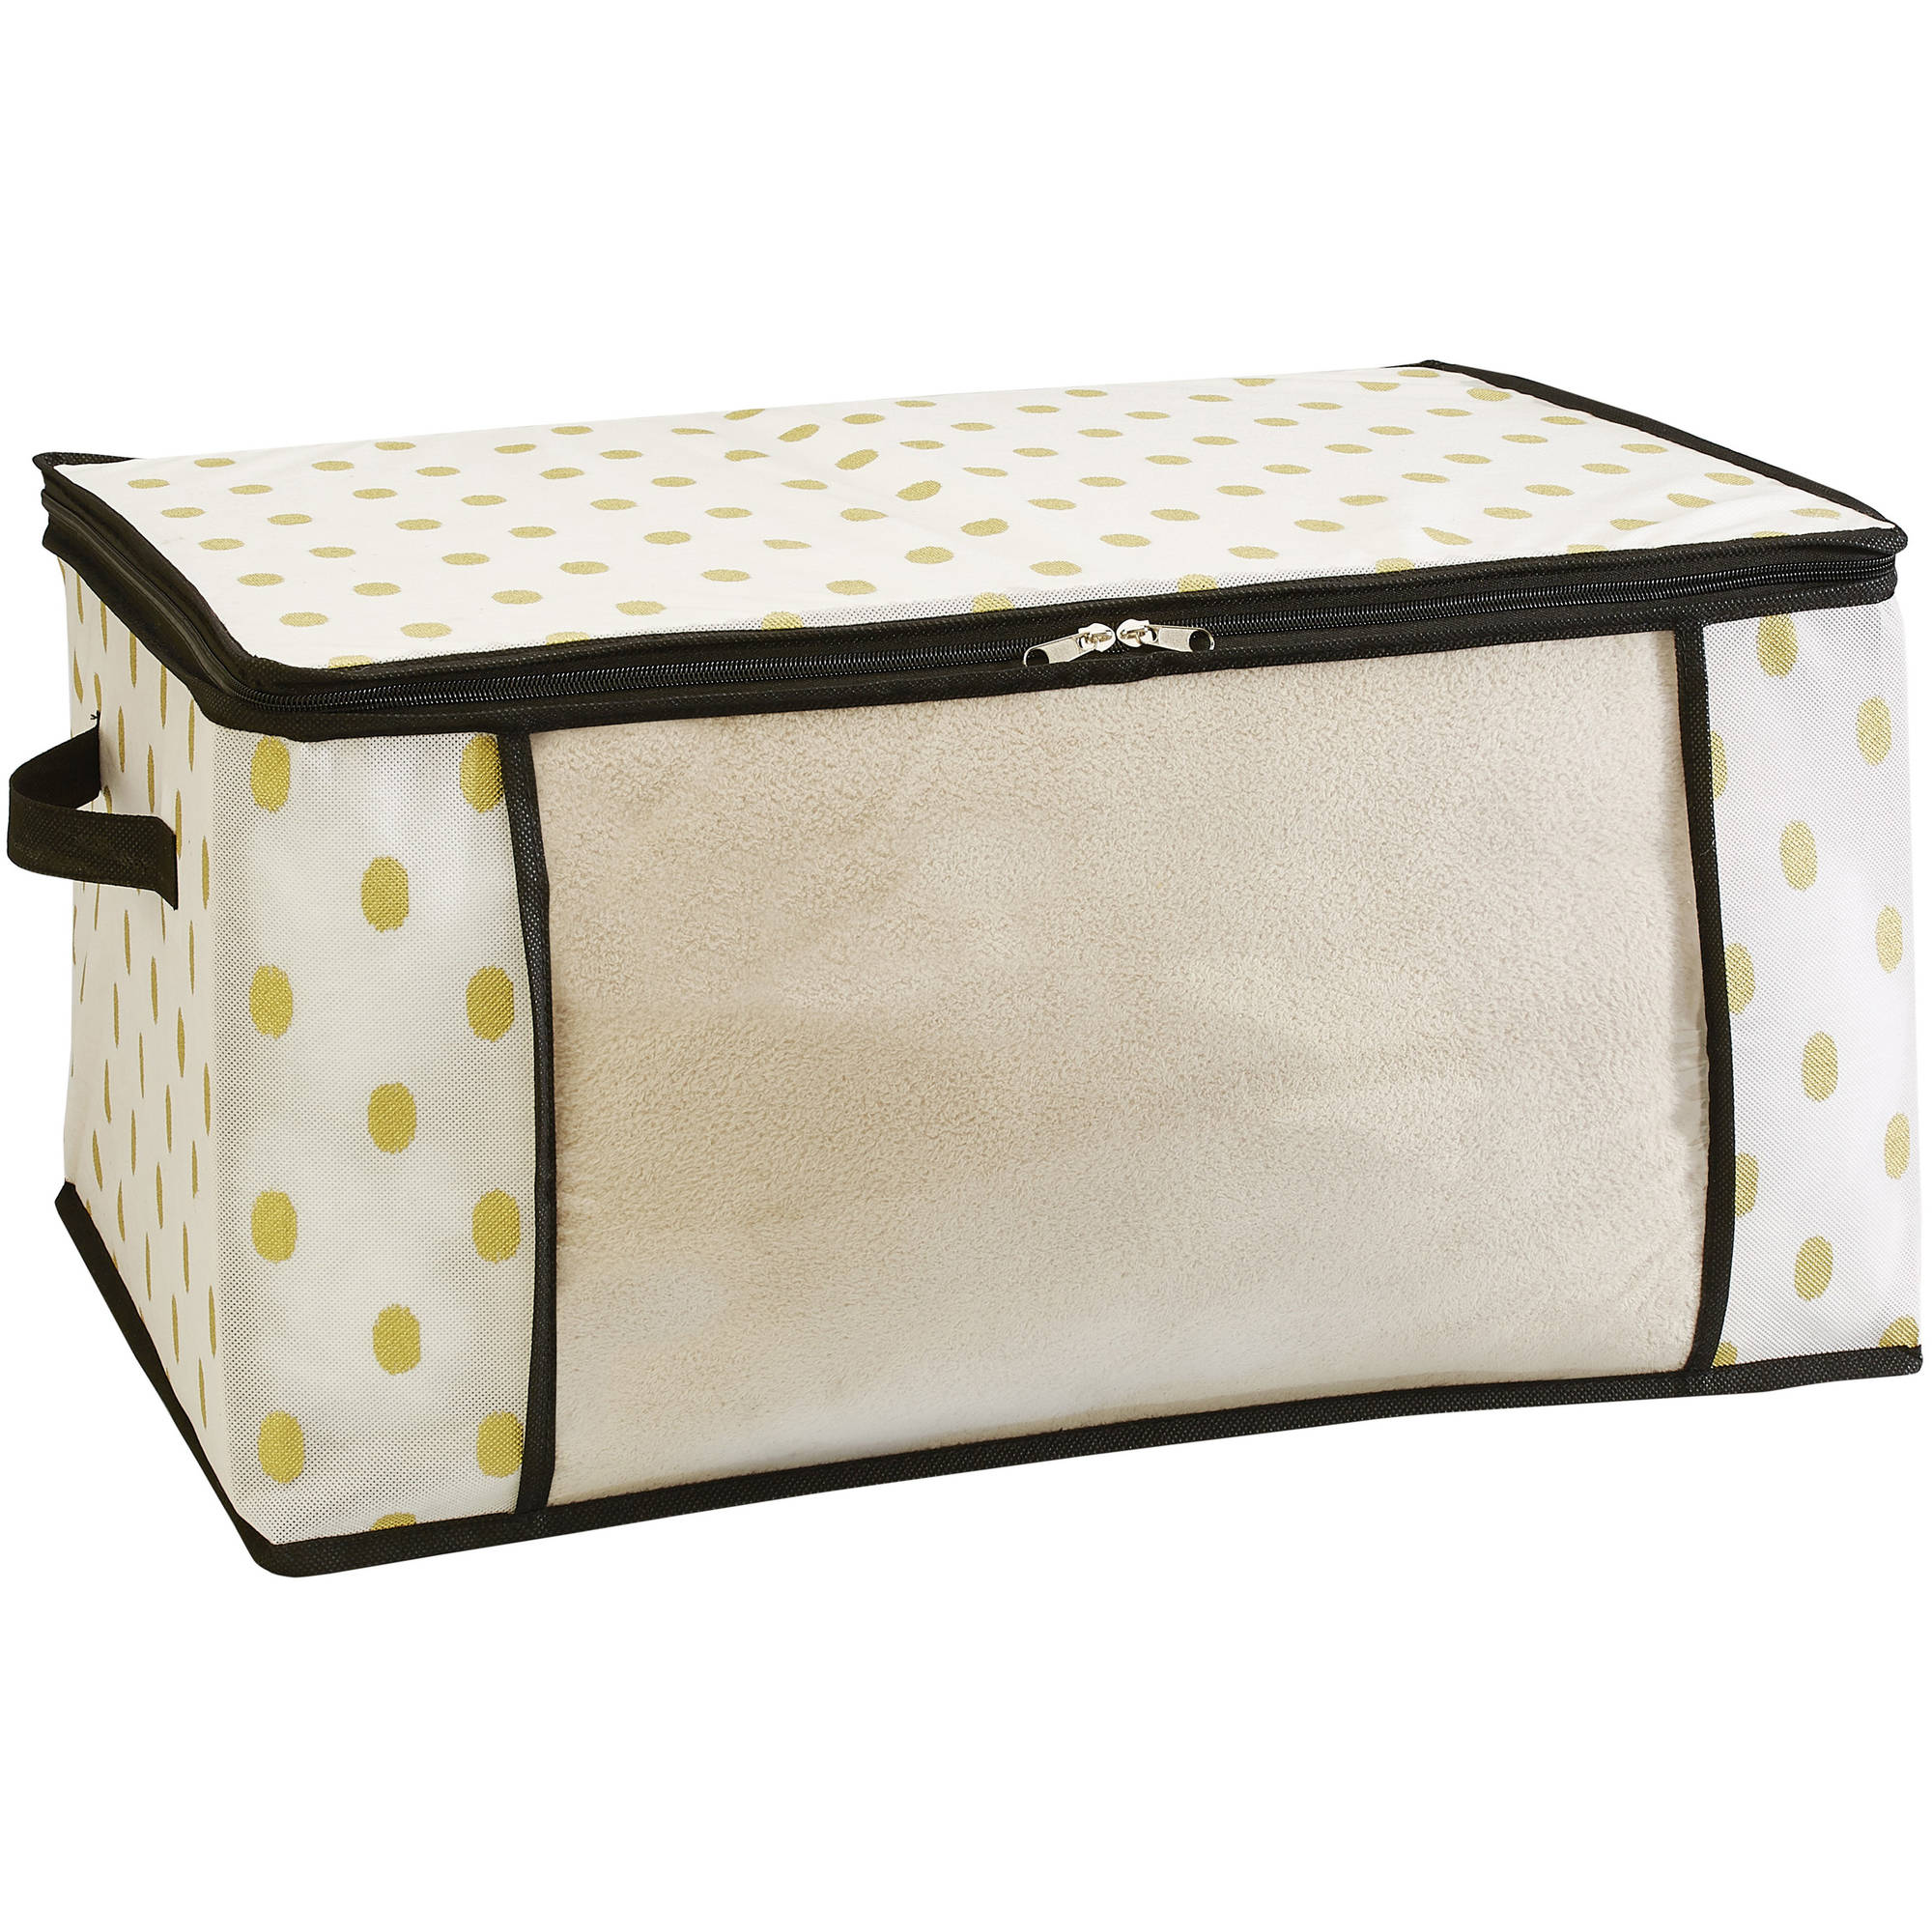 "NW Blanket Bag, 24"" x 18"" x 12"", White/Gold Dot"